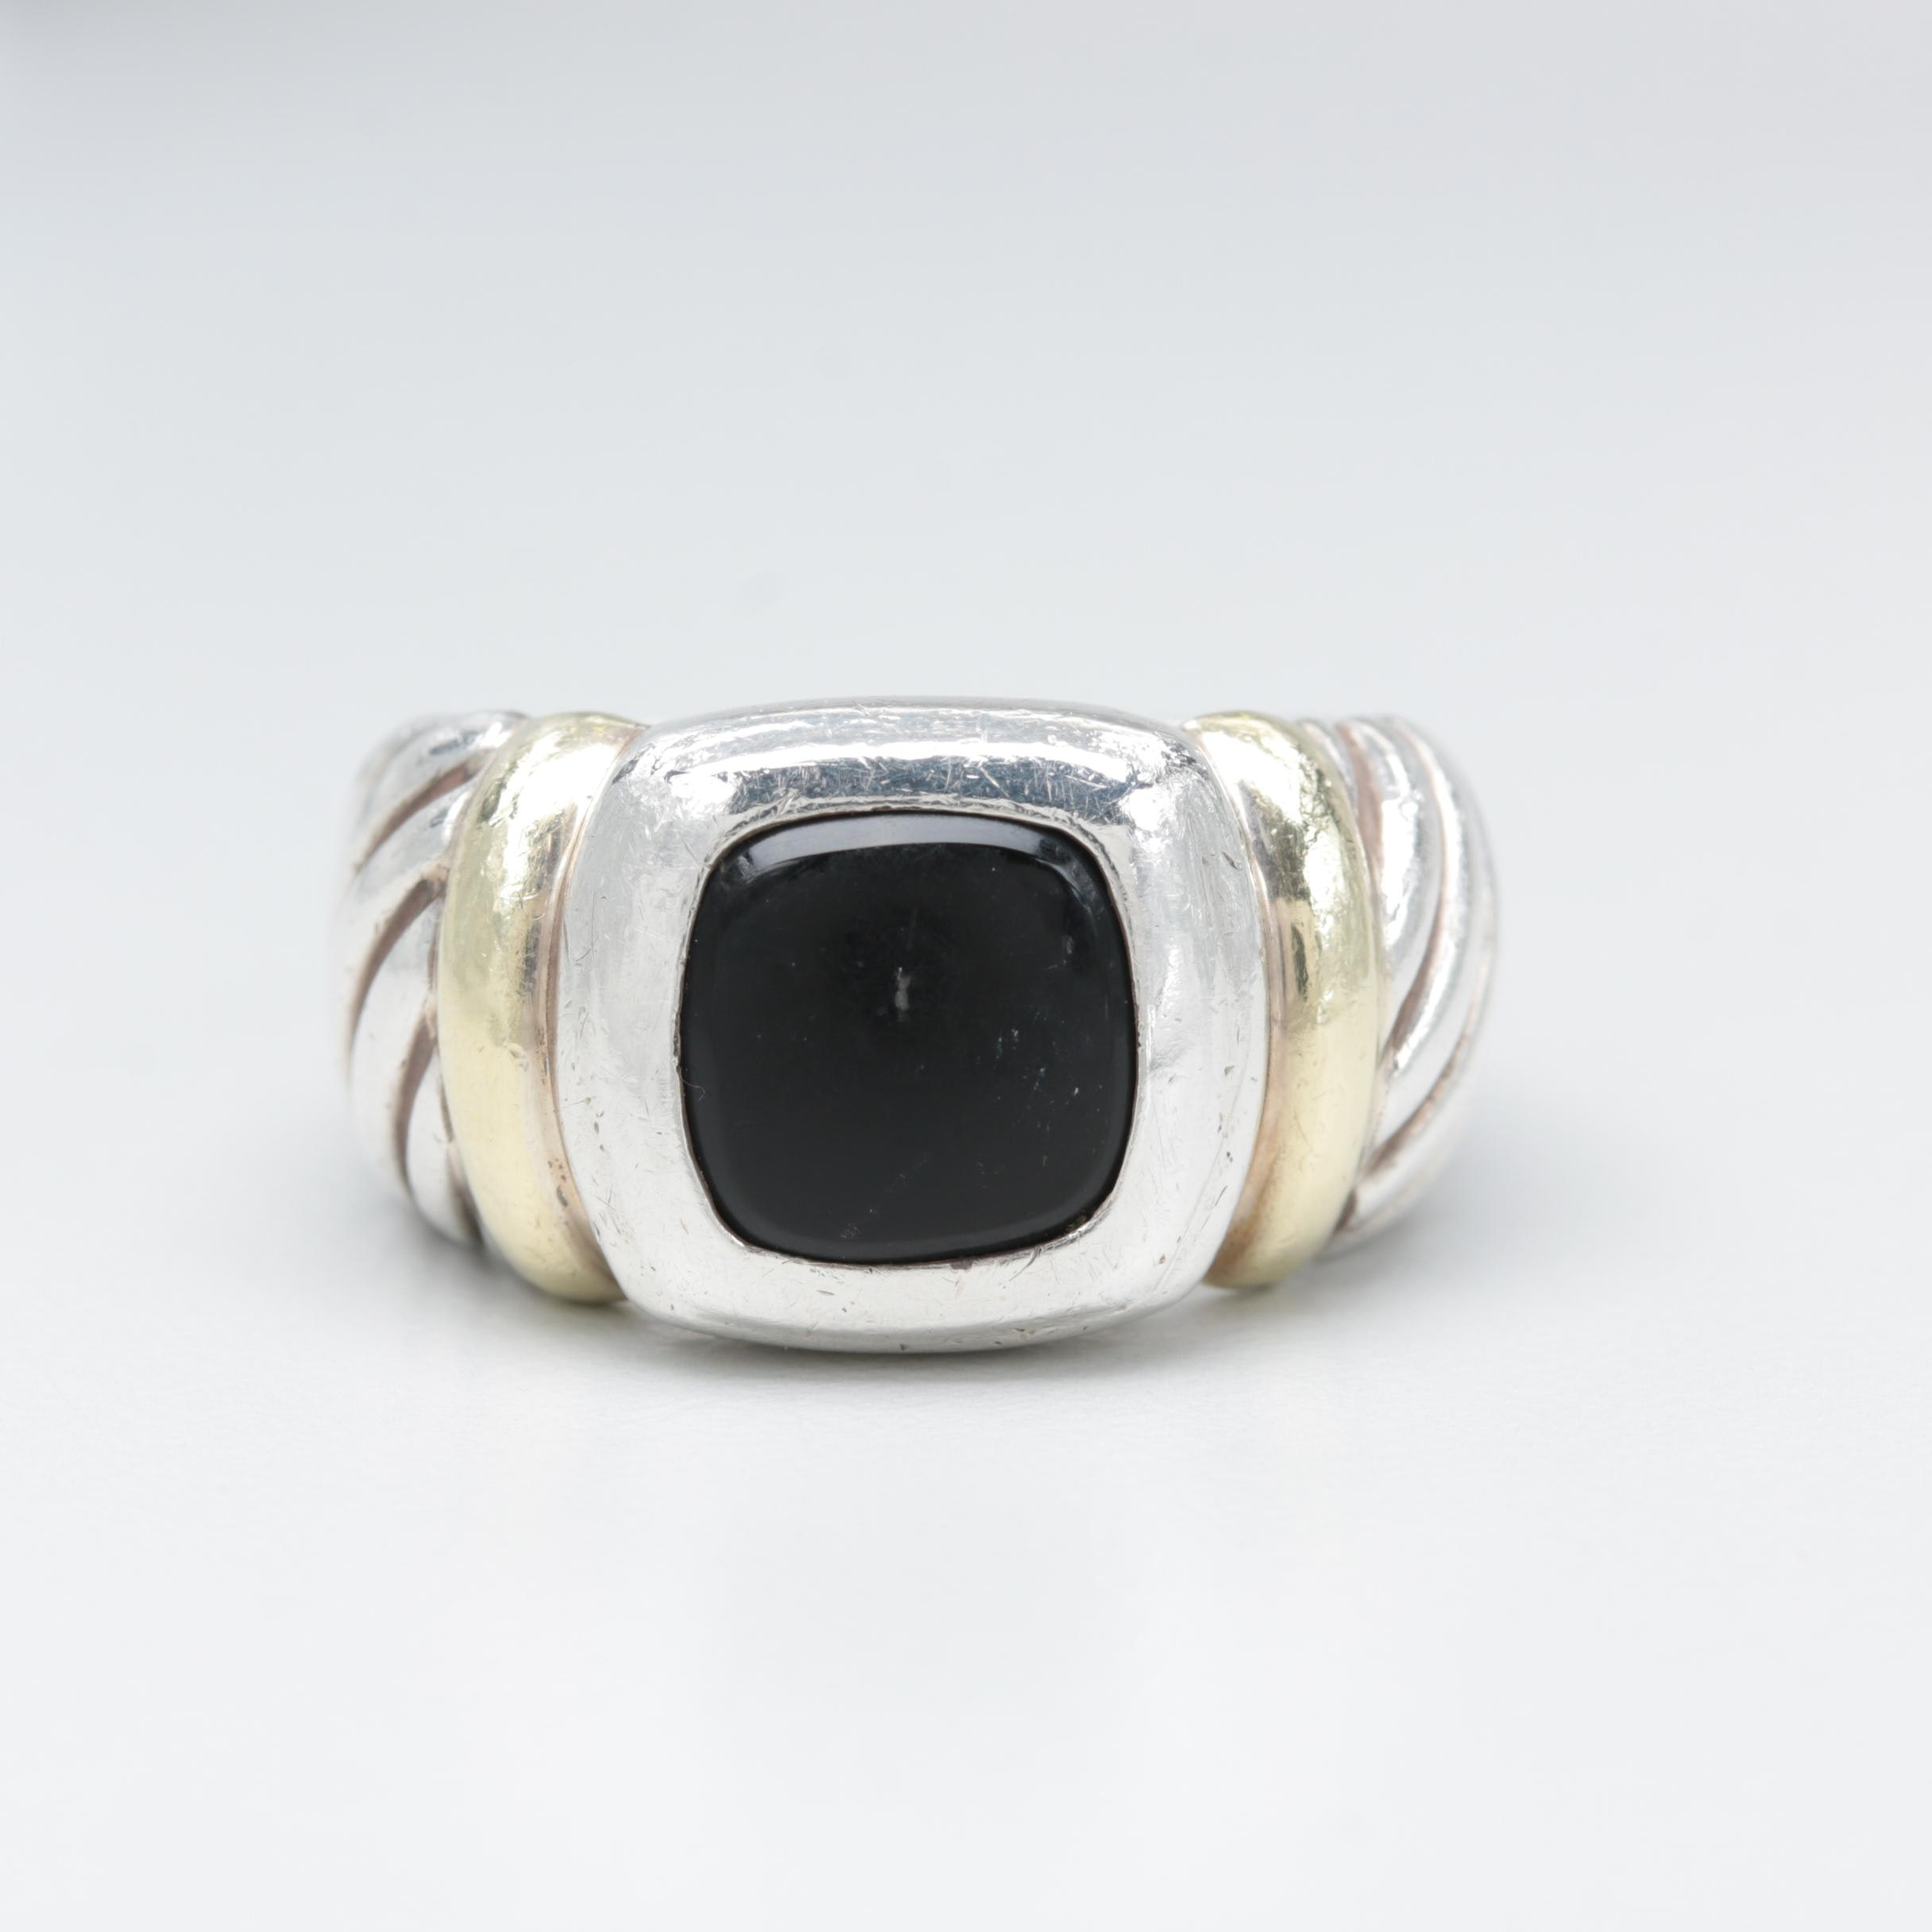 David Yurman Sterling Sliver Black Onyx Ring with 14K Yellow Gold Accents